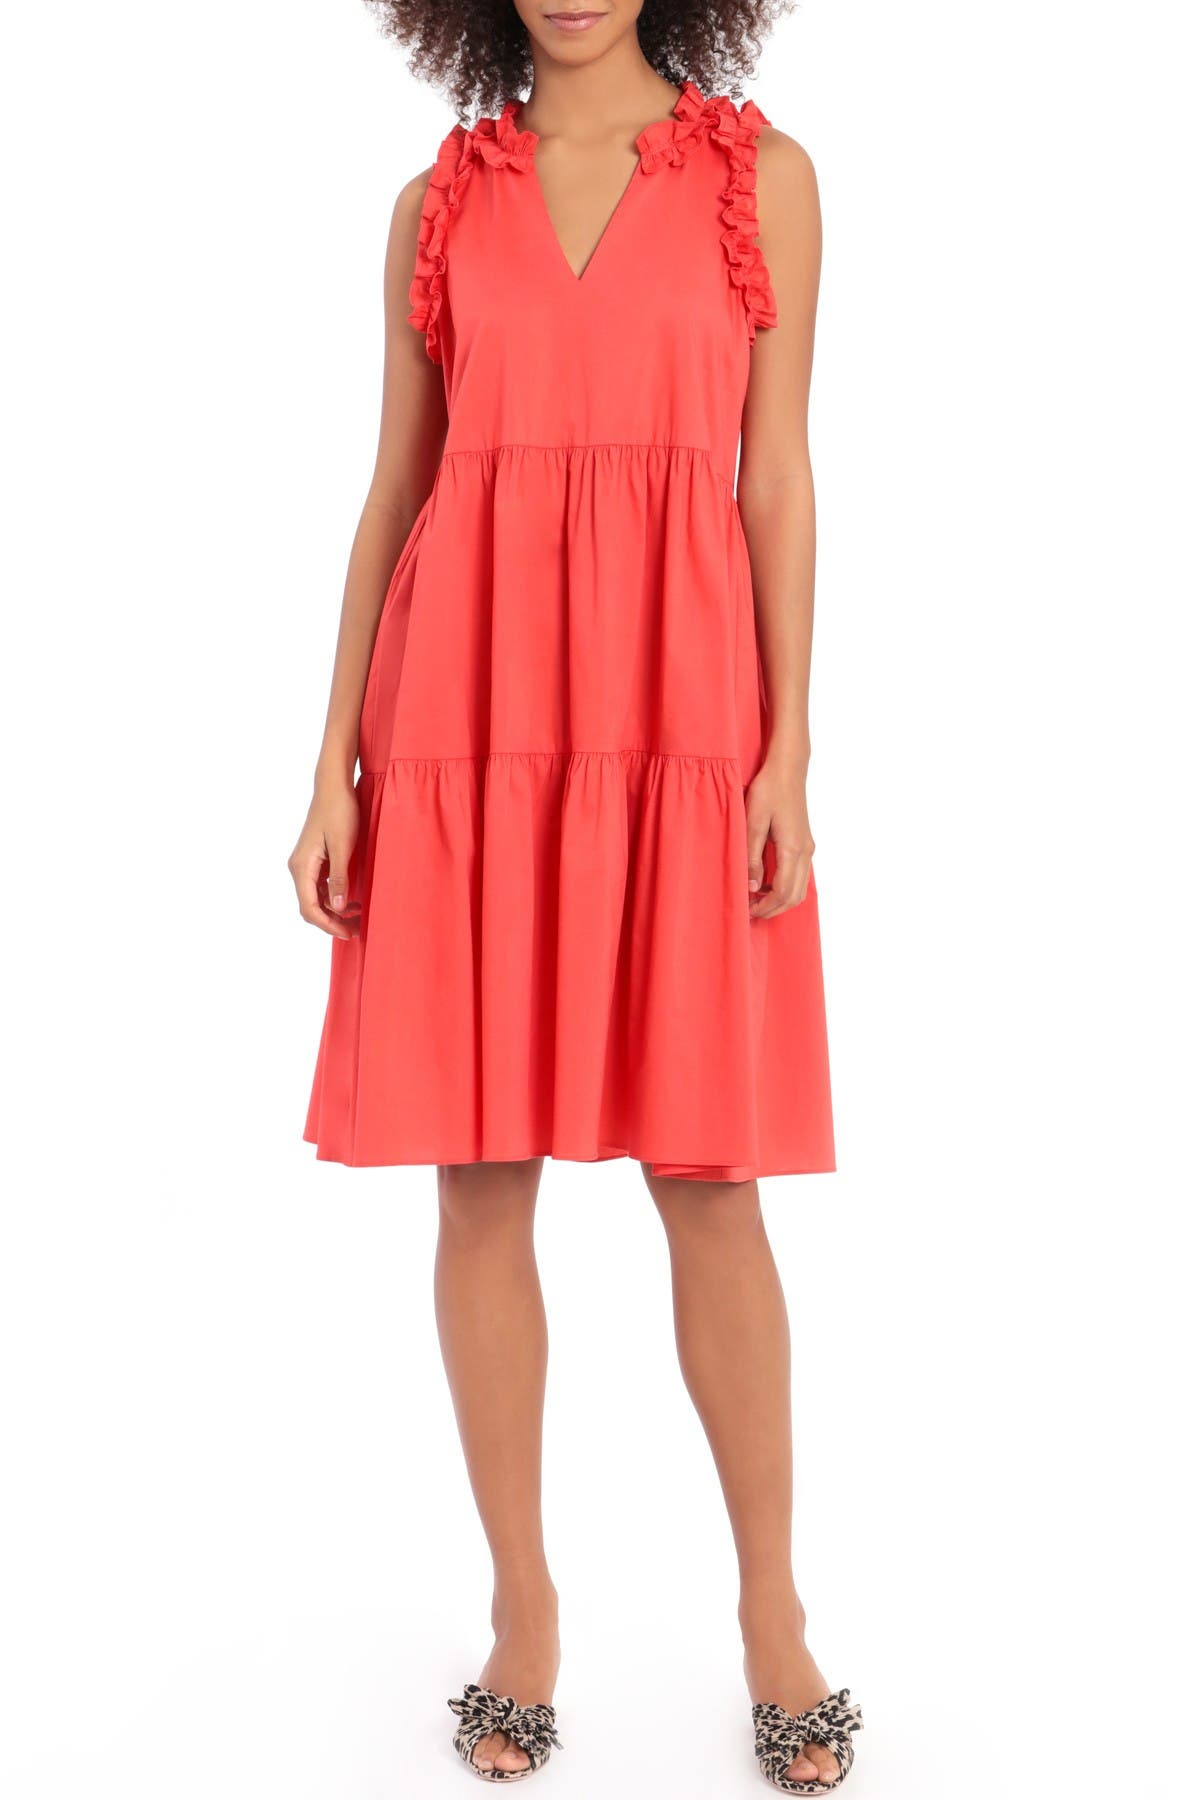 Image of Maggy London 3-Tier Ruffle V-Neck Trapeze Dress